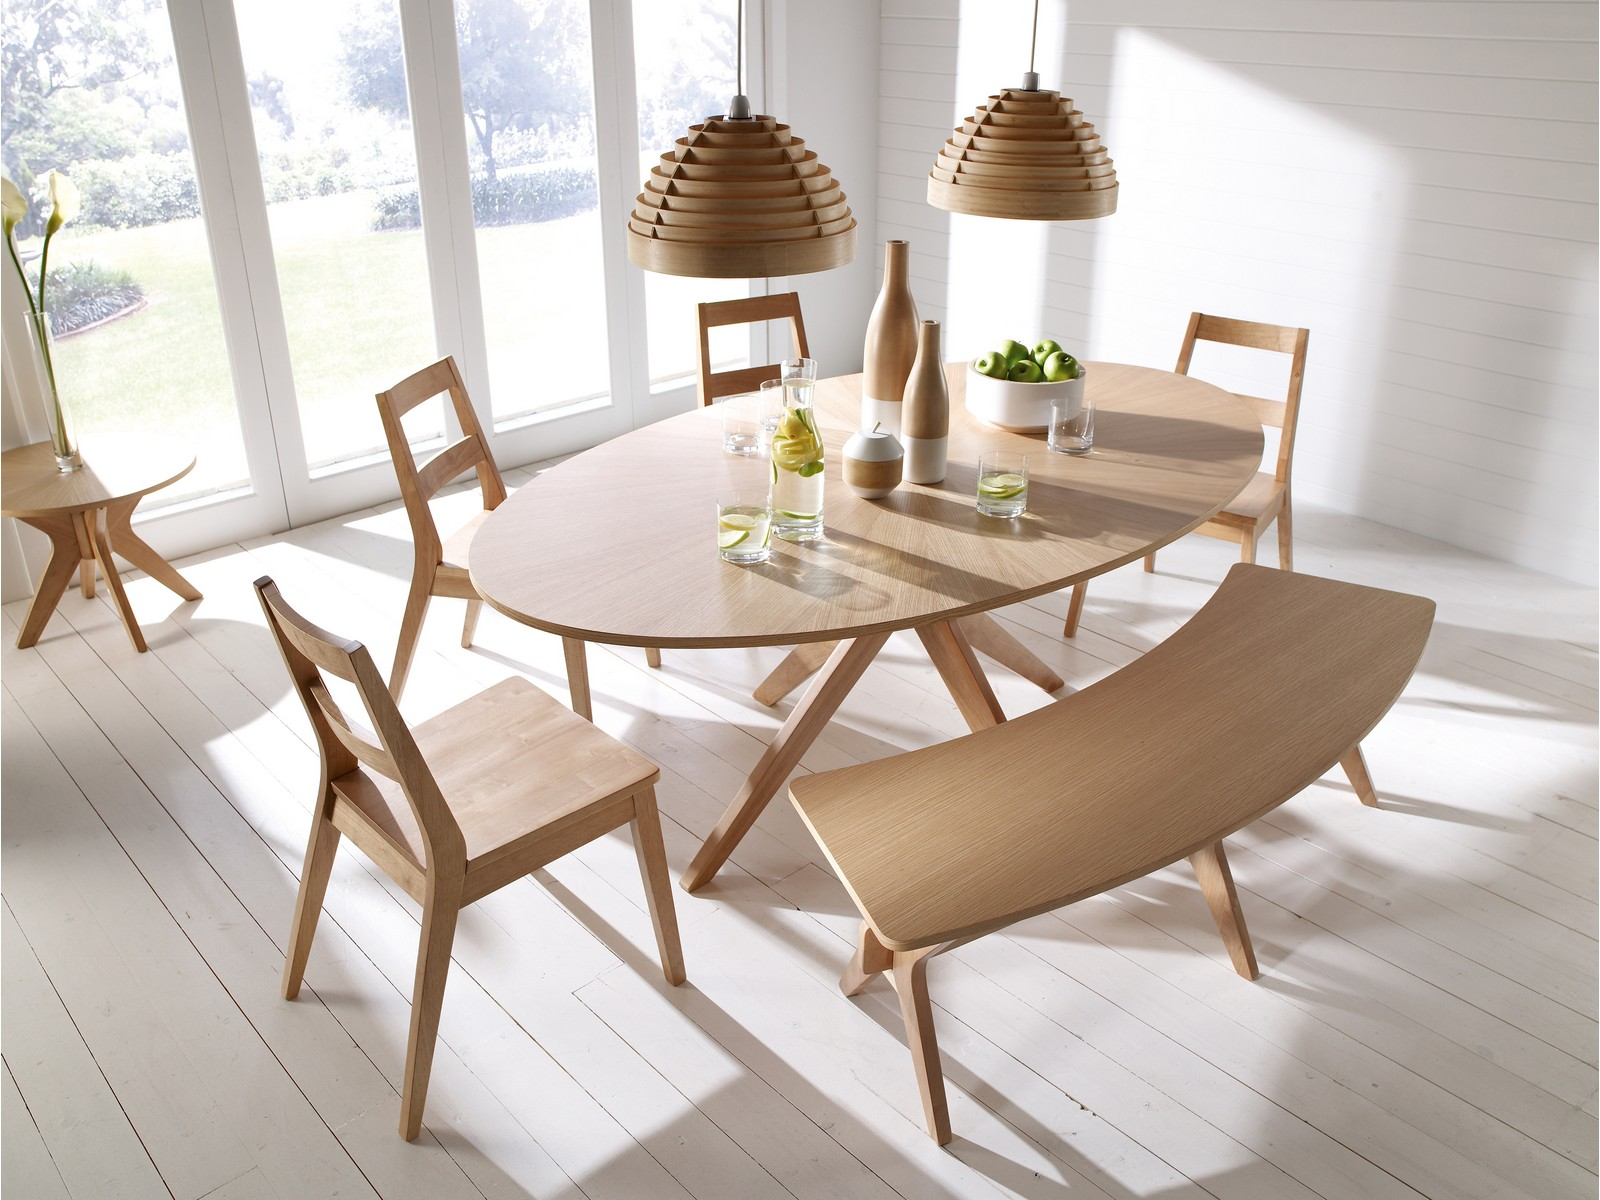 Magnificent Details About Malmo Scandinavian Style Dining Furniture Tables Chairs Benches White Oak Caraccident5 Cool Chair Designs And Ideas Caraccident5Info